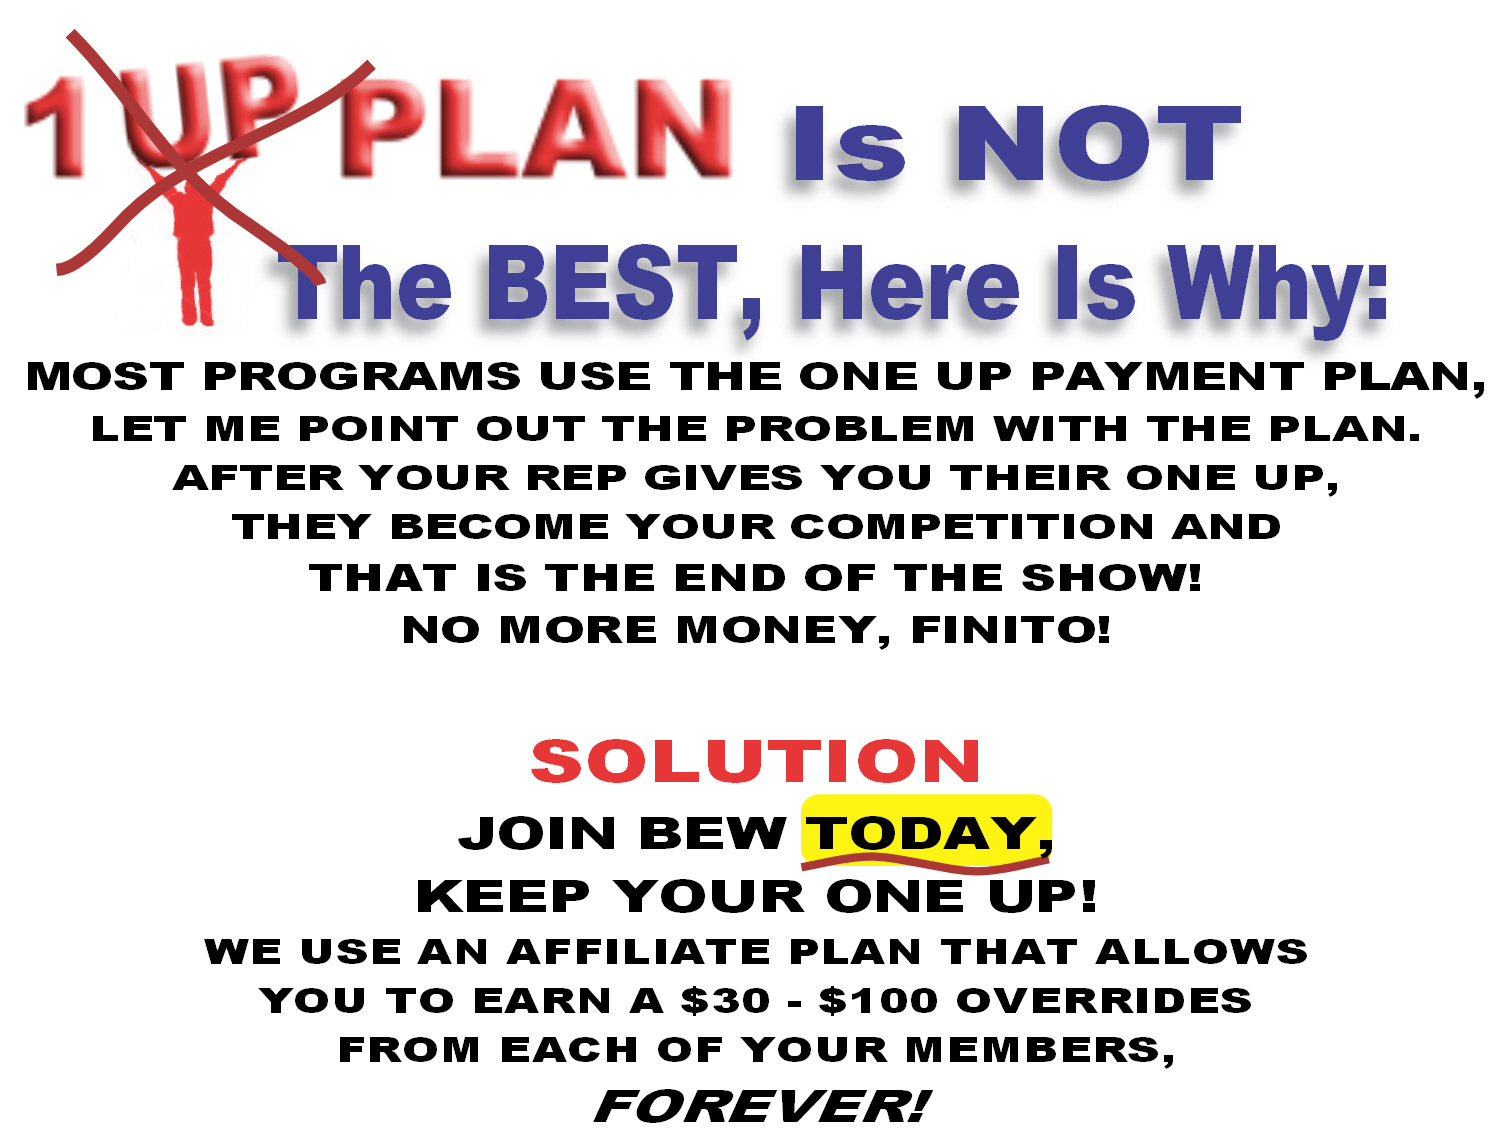 https://www.besteasywork.com/SOLUTION1UP.jpg